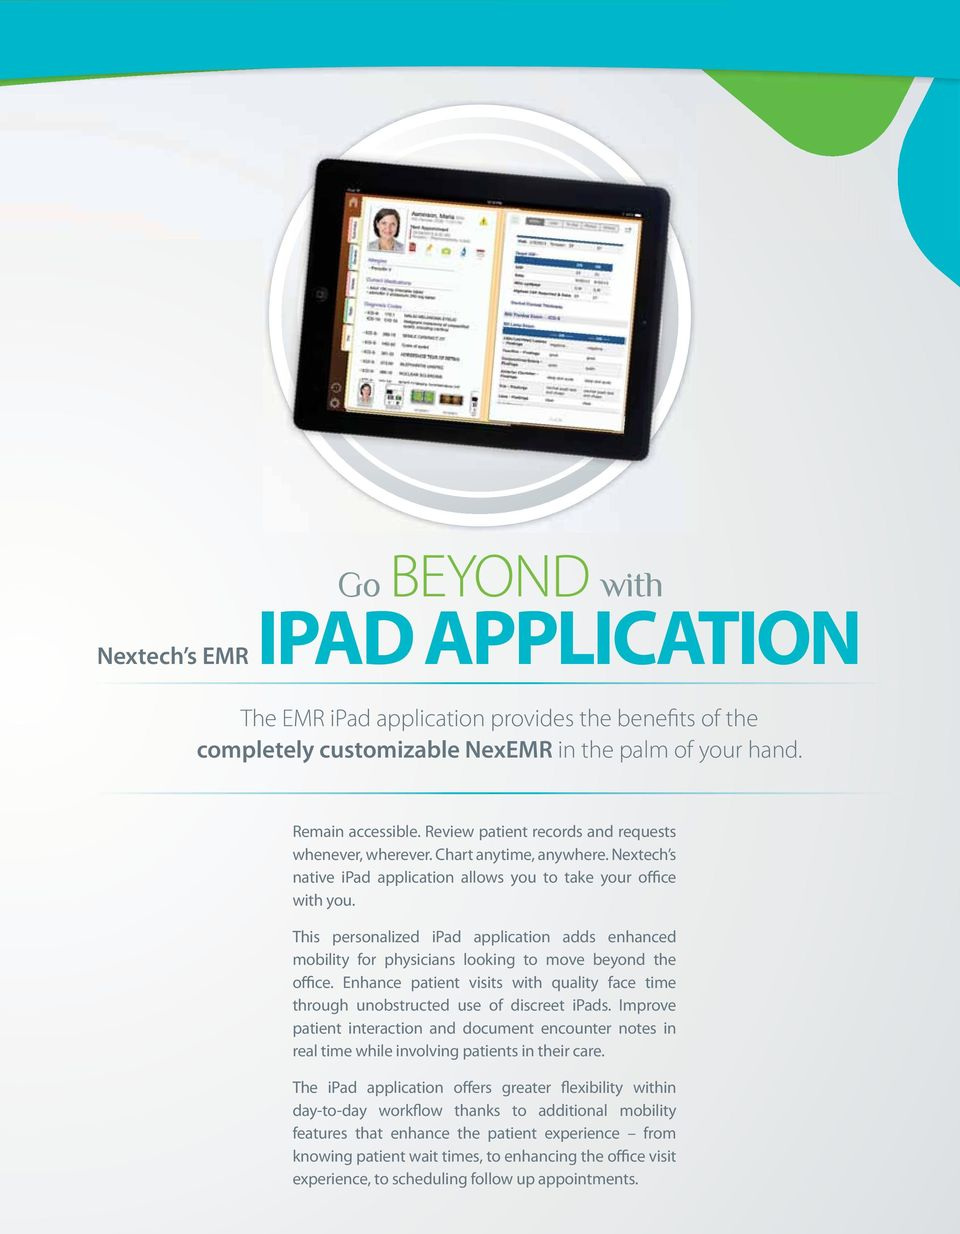 This personalized ipad application adds enhanced mobility for physicians looking to move beyond the office. Enhance patient visits with quality face time through unobstructed use of discreet ipads.